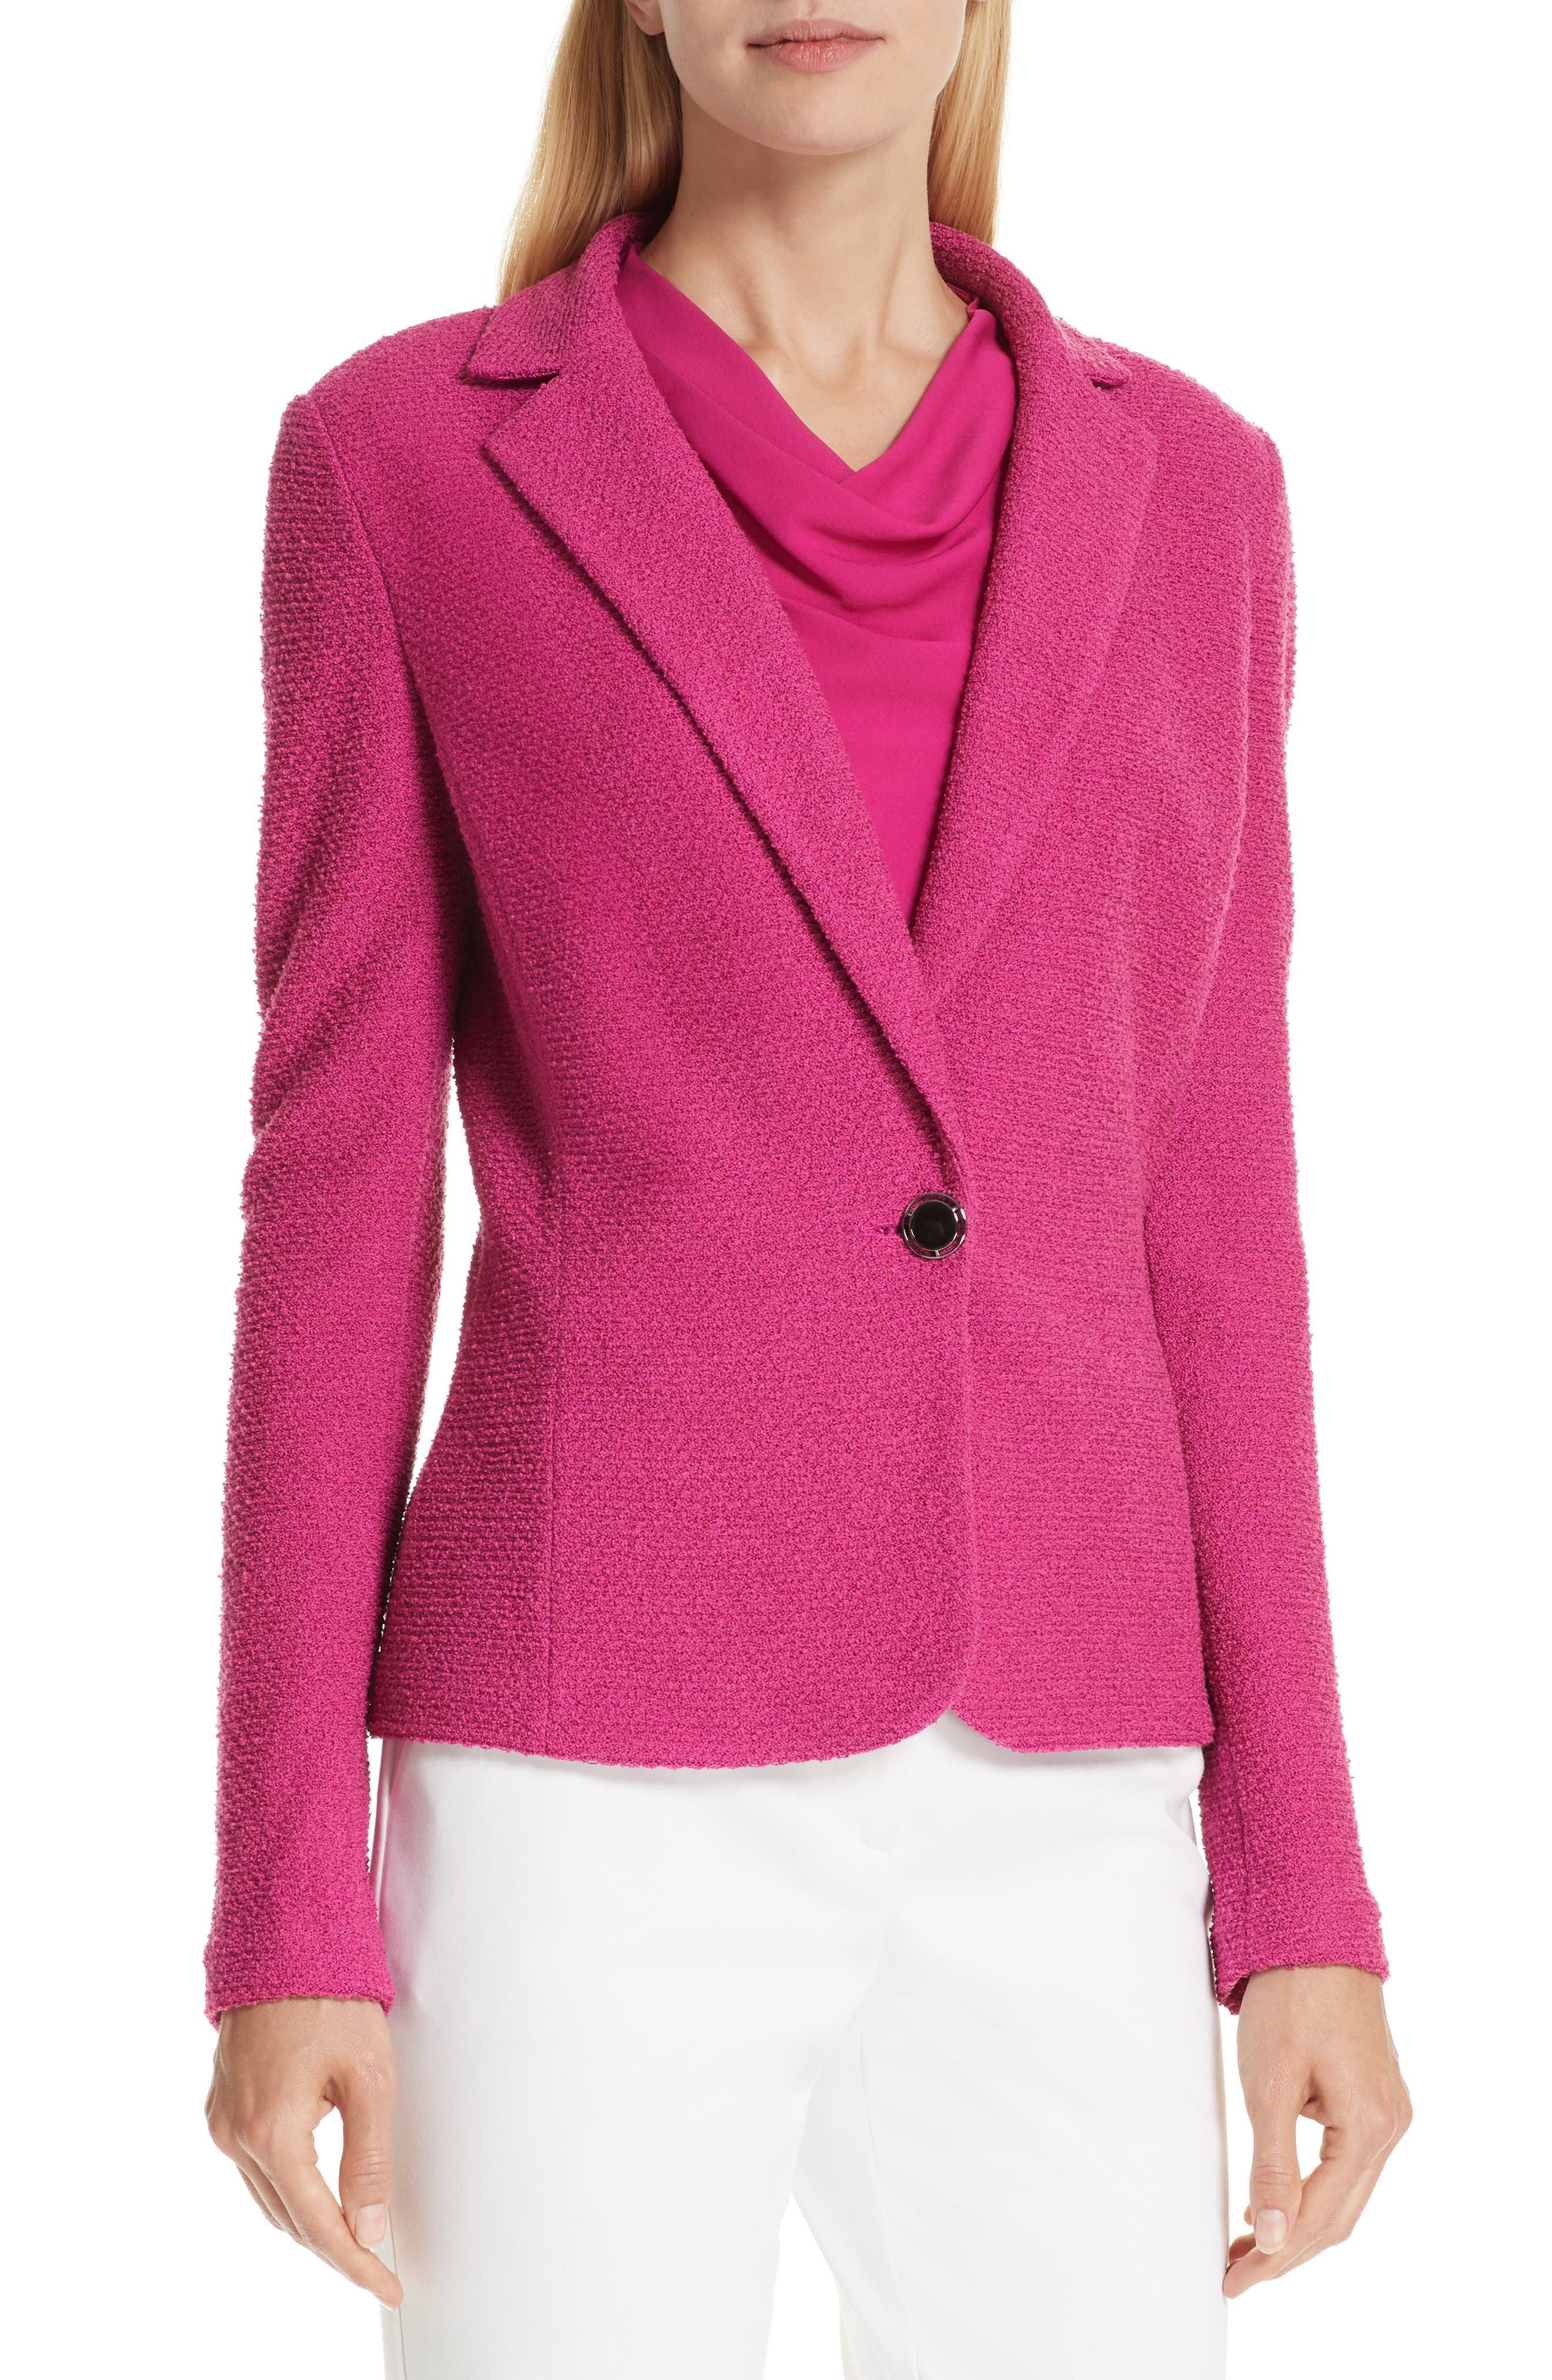 ST. JOHN COLLECTION, Refined Knit Jacket, Alternate thumbnail 5, color, CAMELLIA